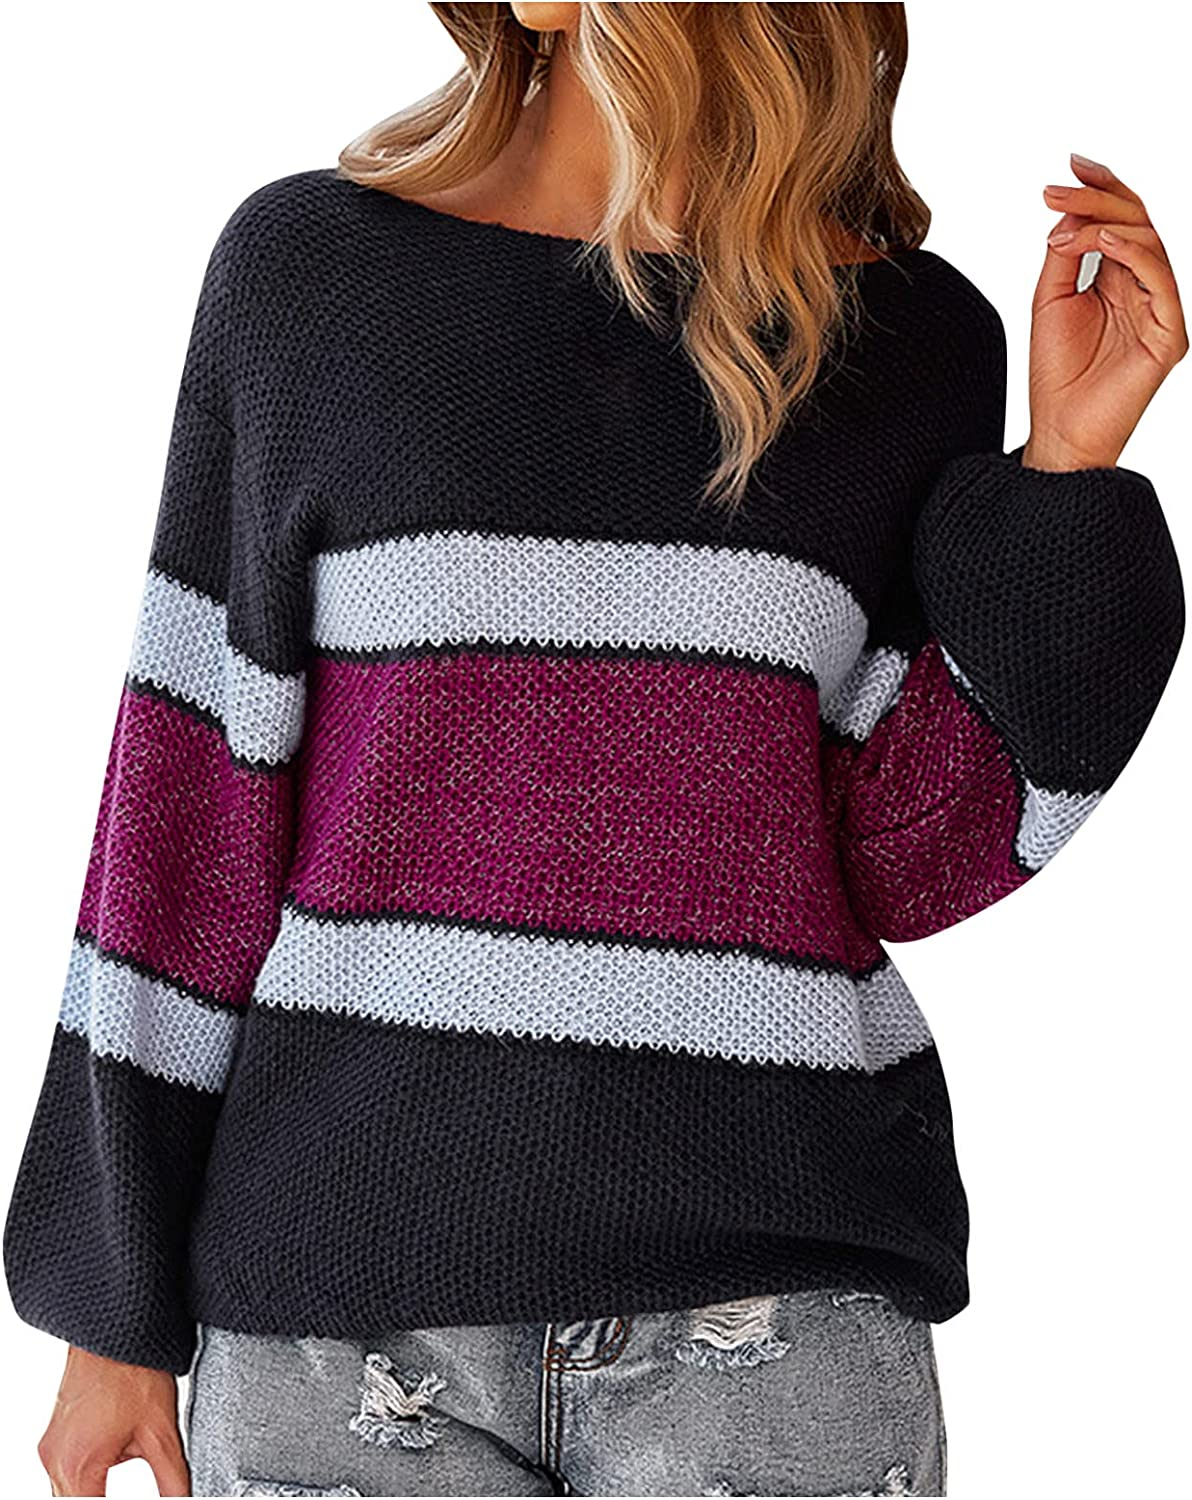 RUIY Women's Stripe Color Block Fall Sweater Long Sleeve Stitching Color Crew Neck Loose Ribbed Knitted Pullovers Jumper